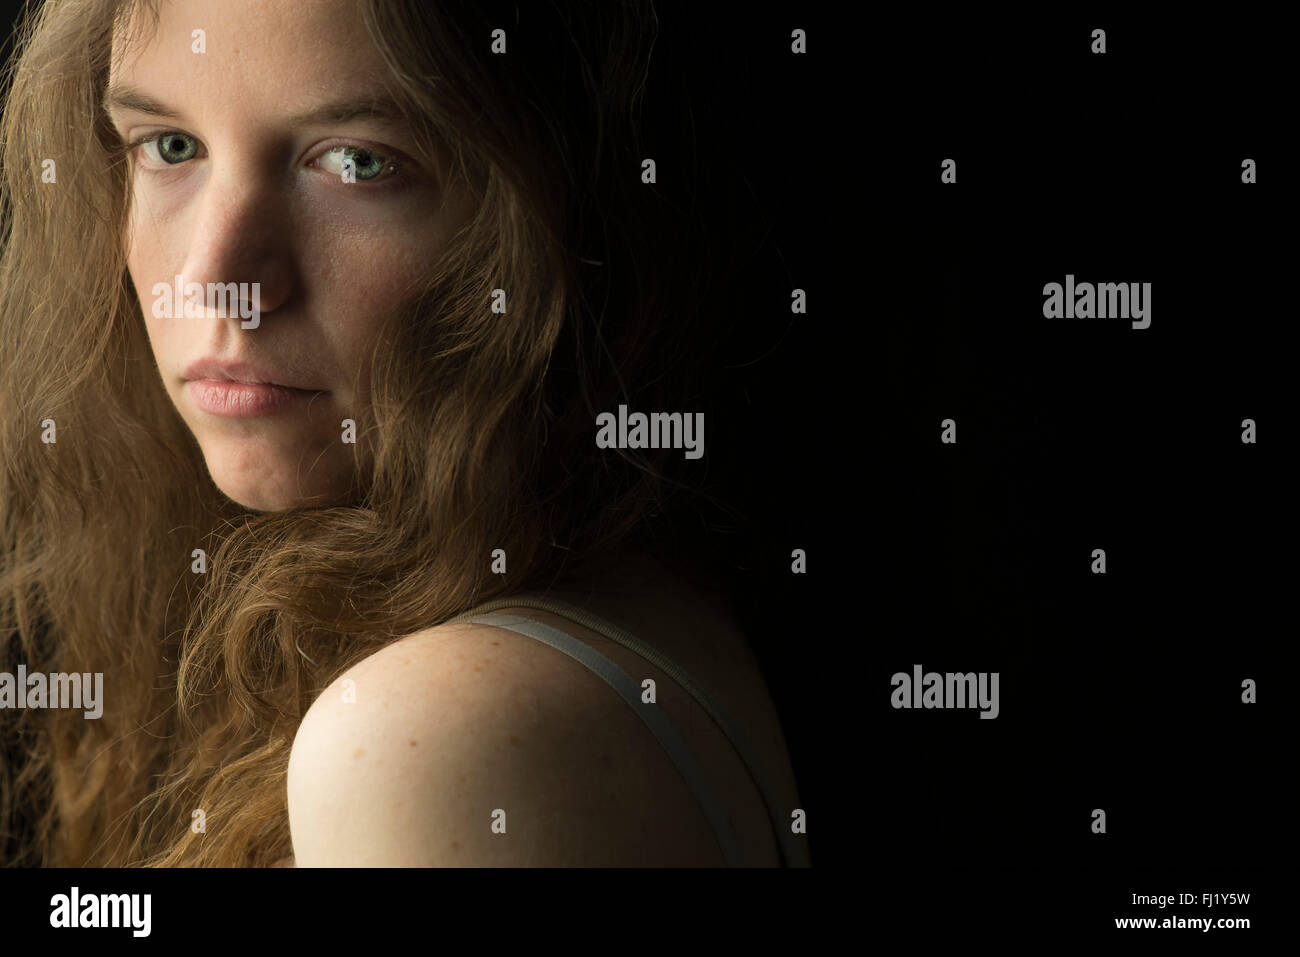 Beautiful young woman with fair skin and blue eyes and long brown hair, dramatically lit against a plain black background - Stock Image